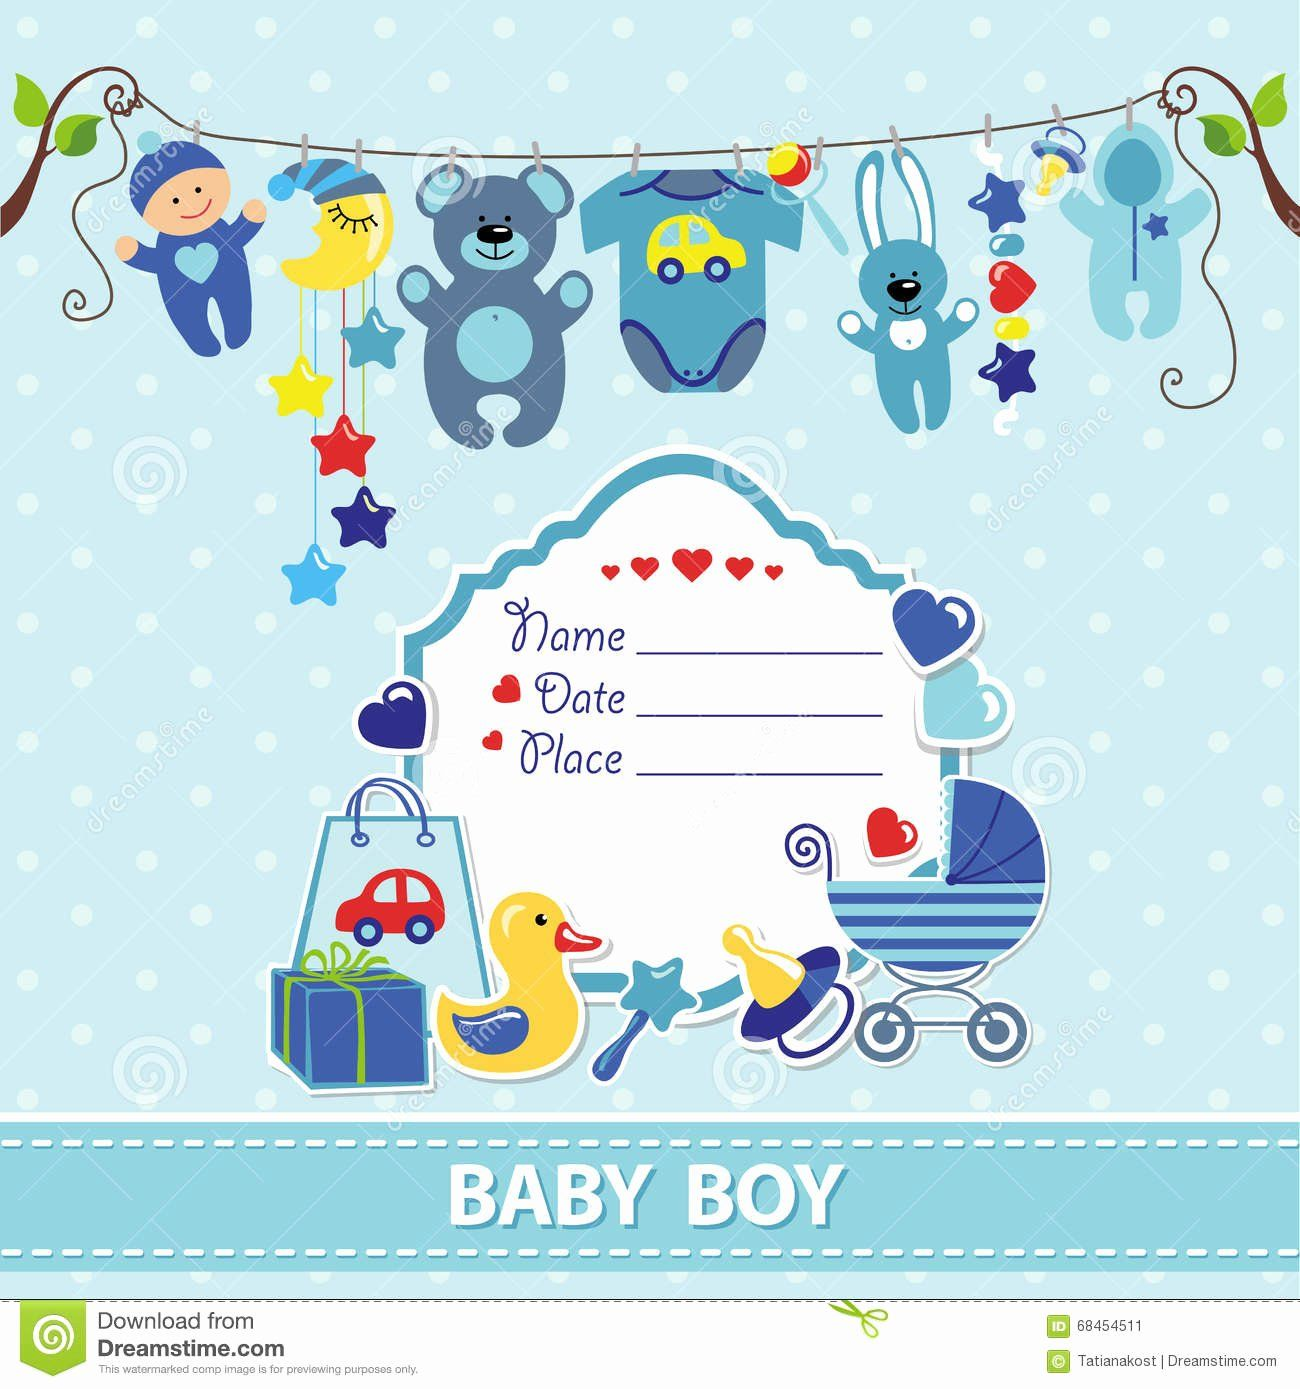 Baby Shower Invitation Card Template Unique 005 Free Printable Baby Cards Templates Baby Shower Invitation Cards Baby Boy Invitations Baby Congratulations Card